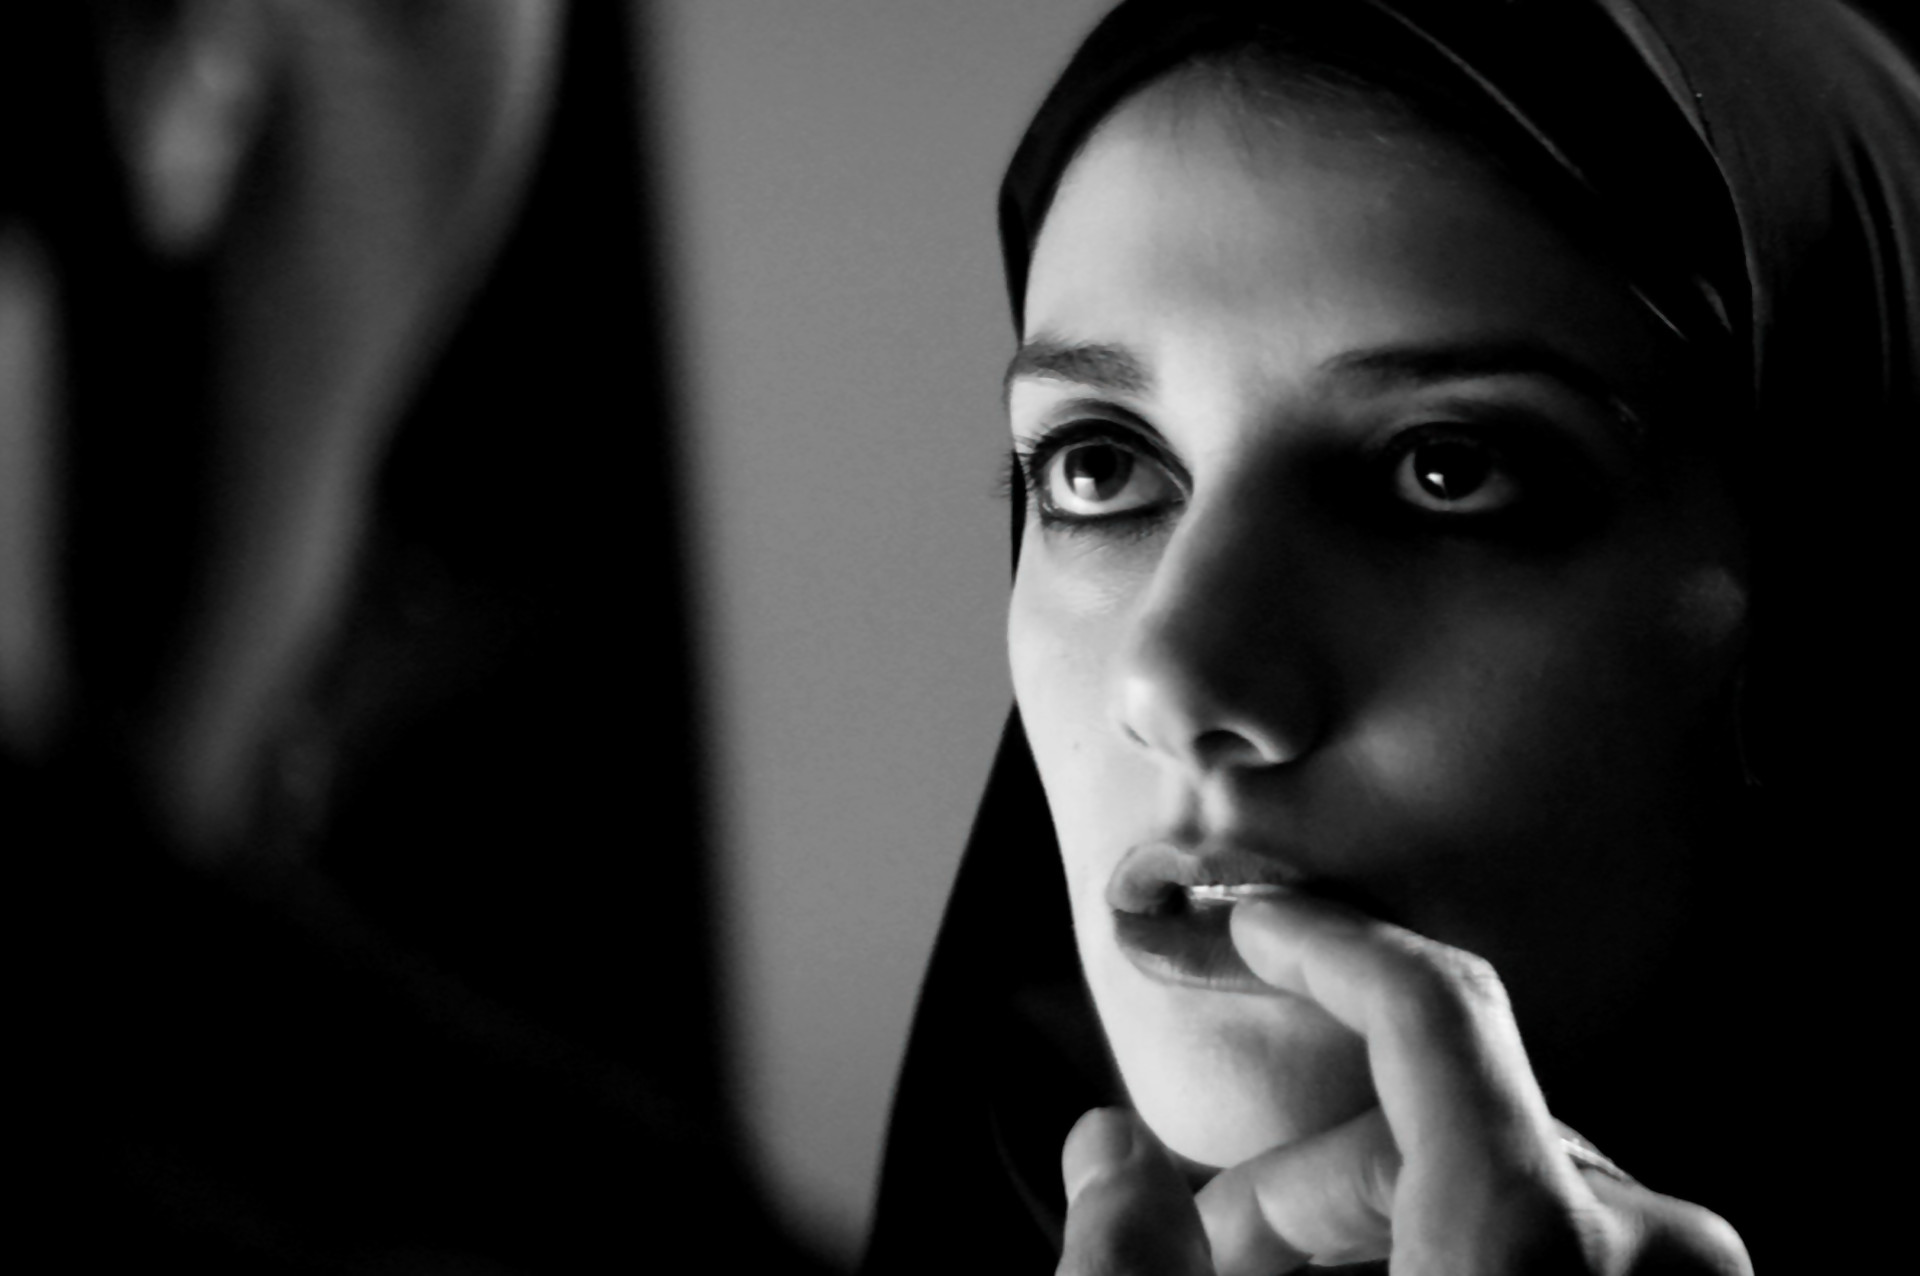 İran'ın İlk Vampir Filmi A Girl Walks Home Alone At Night